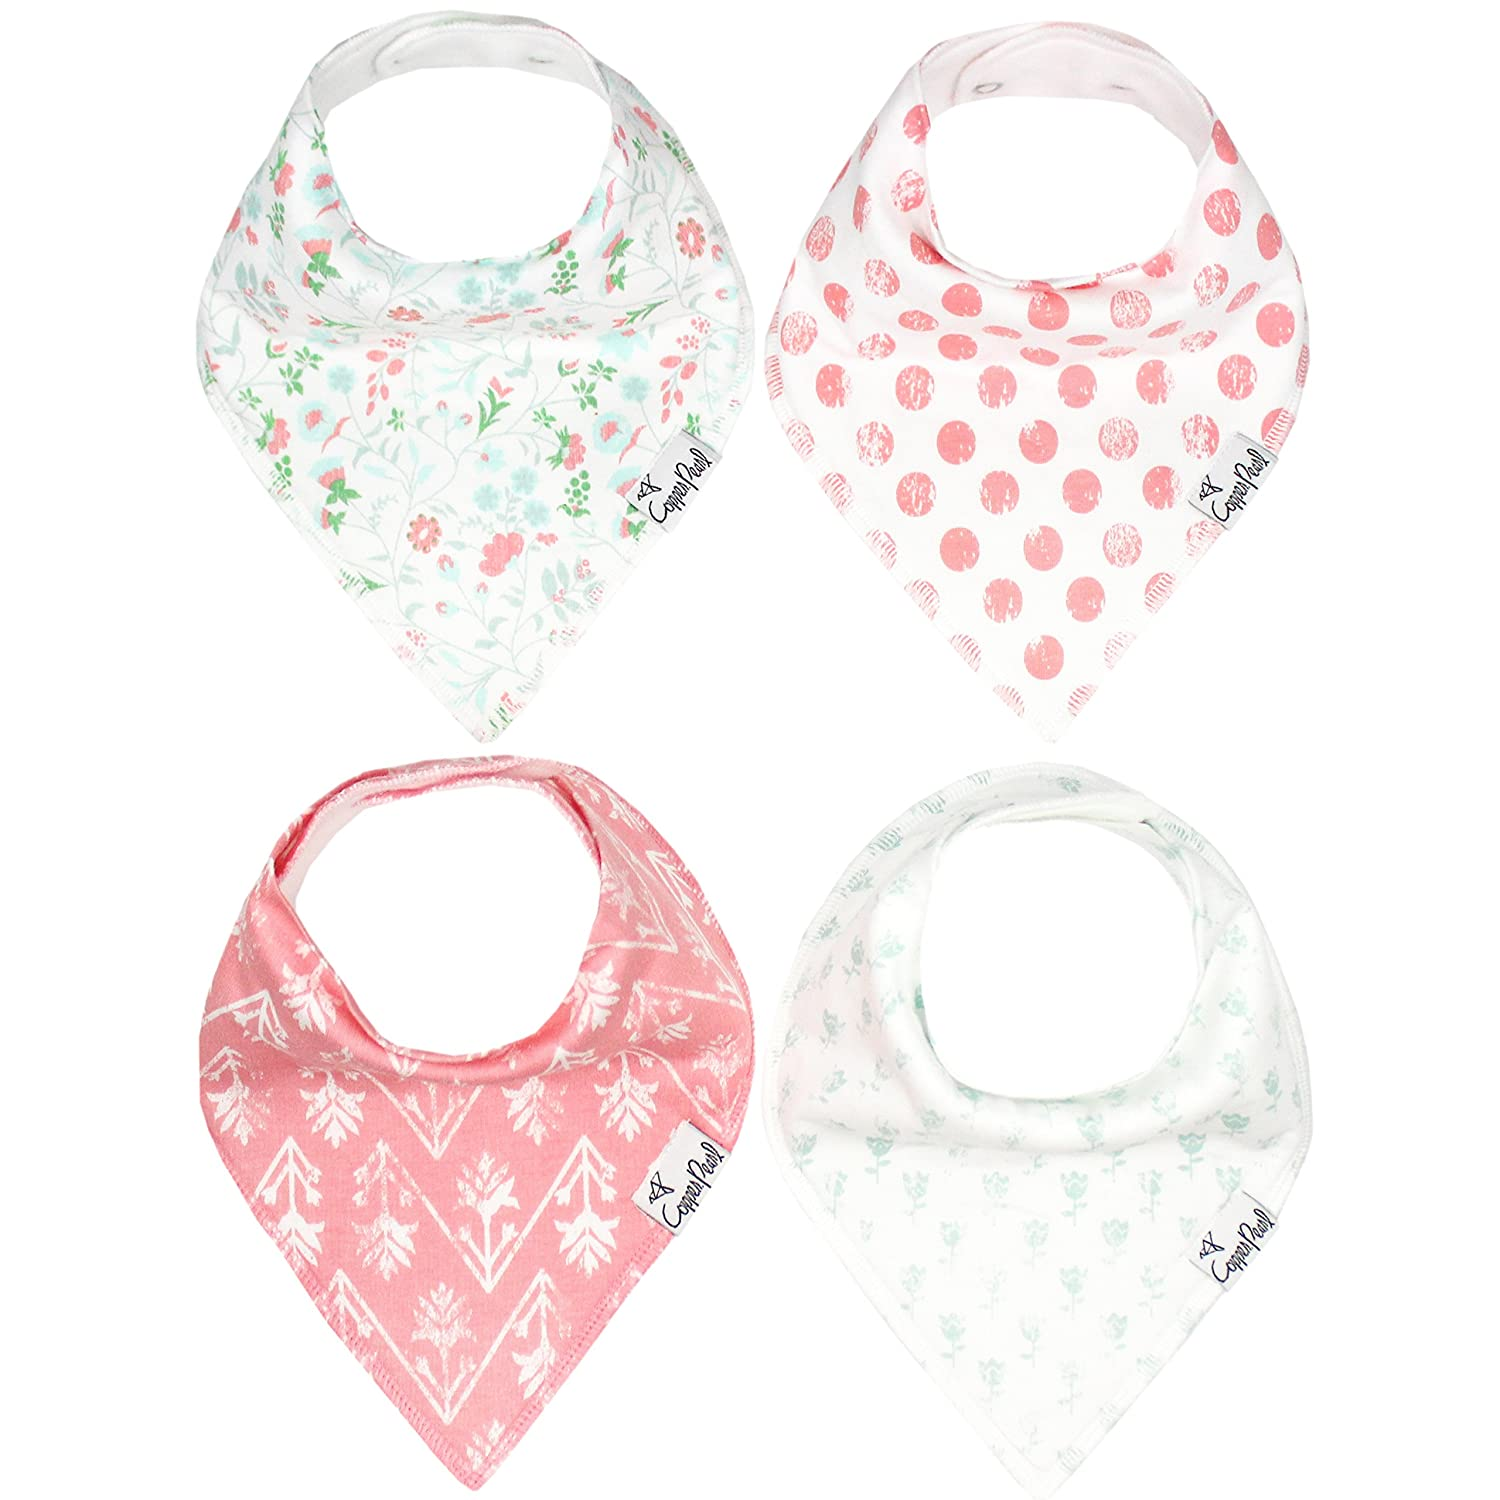 "Baby Bandana Drool Bibs for Drooling and Teething 4 Pack Gift Set For Girls ""Claire Set"" by Copper Pearl X00163GGA9"